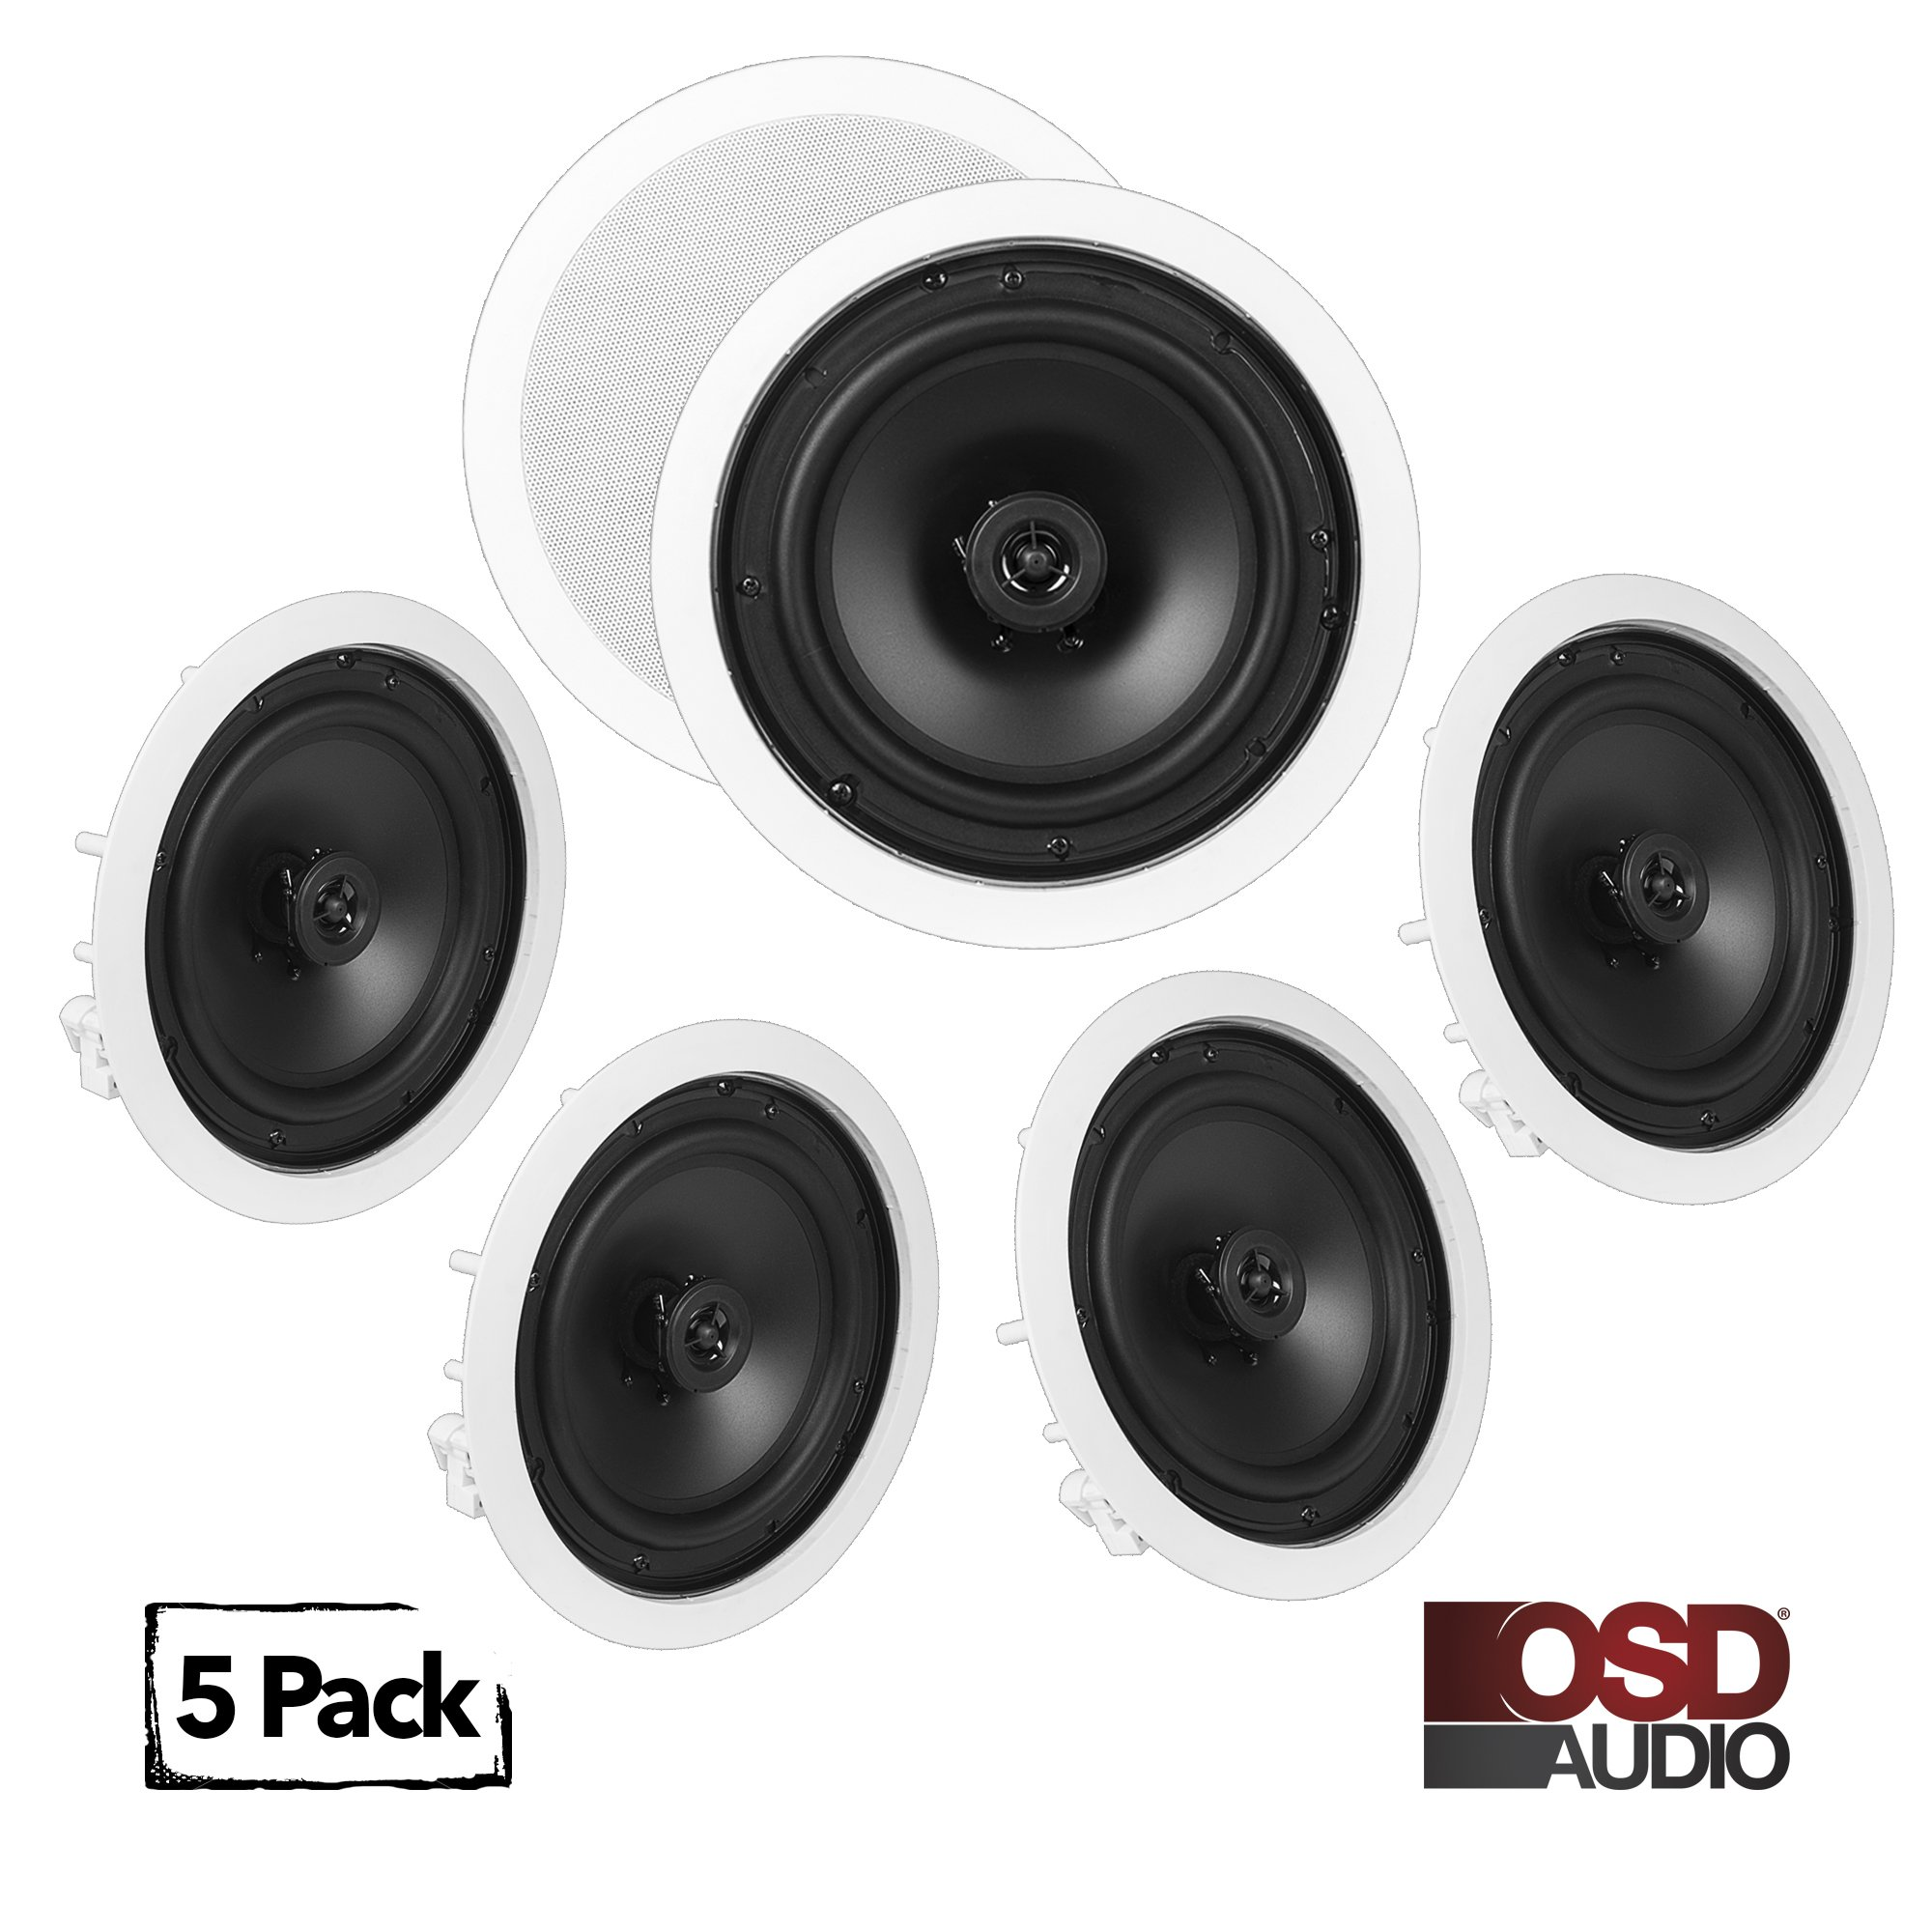 OSD Audio ICE800 In-Ceiling/In-Wall Speaker 1200W Home Theater 5-Speaker Package 8'' Woofer w/ PEI Pivoting Dome Tweeter Paintable Snap-In Grill